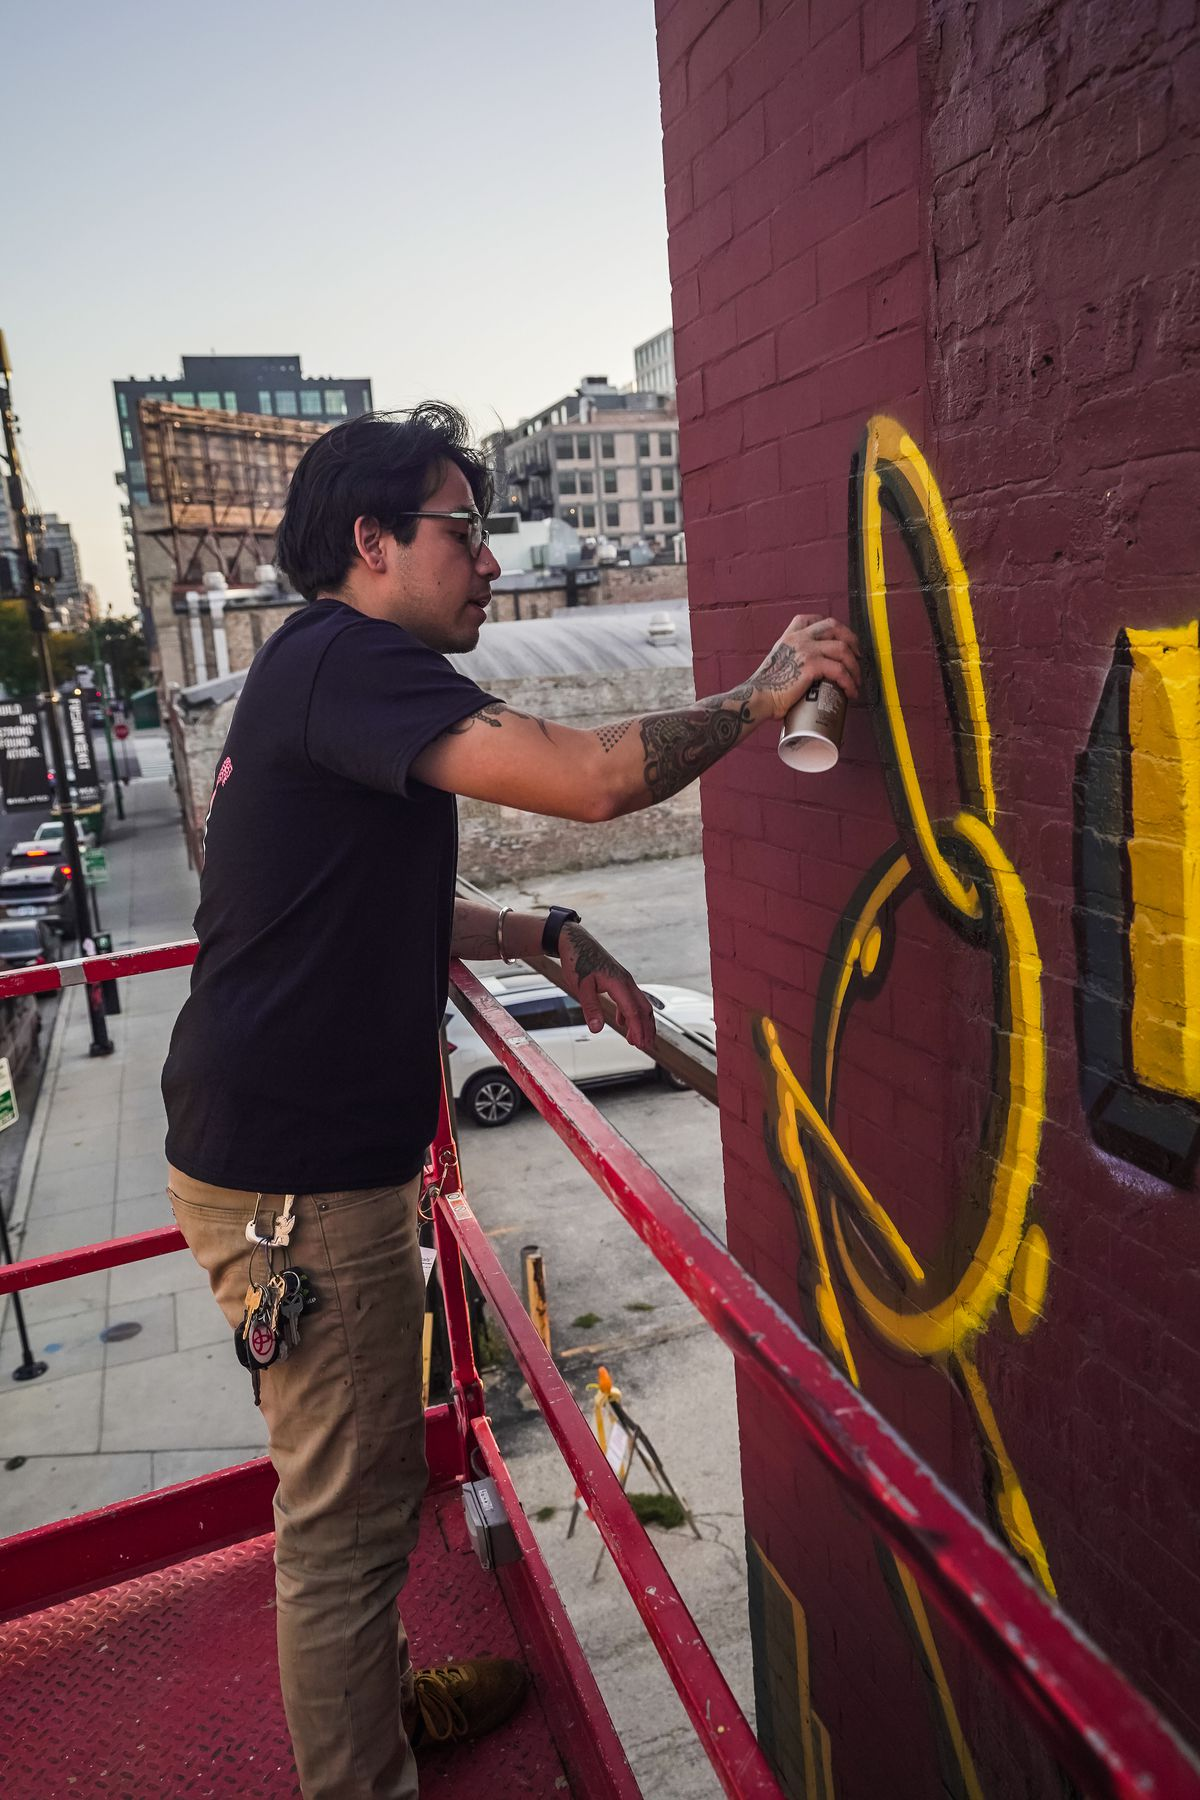 """Chris """"Killabunzz"""" Orta works on the gold chain detail in his section of the mural. Orta is one of five artists who worked on the mural, and works as a tattoo artist with fellow collaborator Jose """"Oinkz_"""" Quezada."""